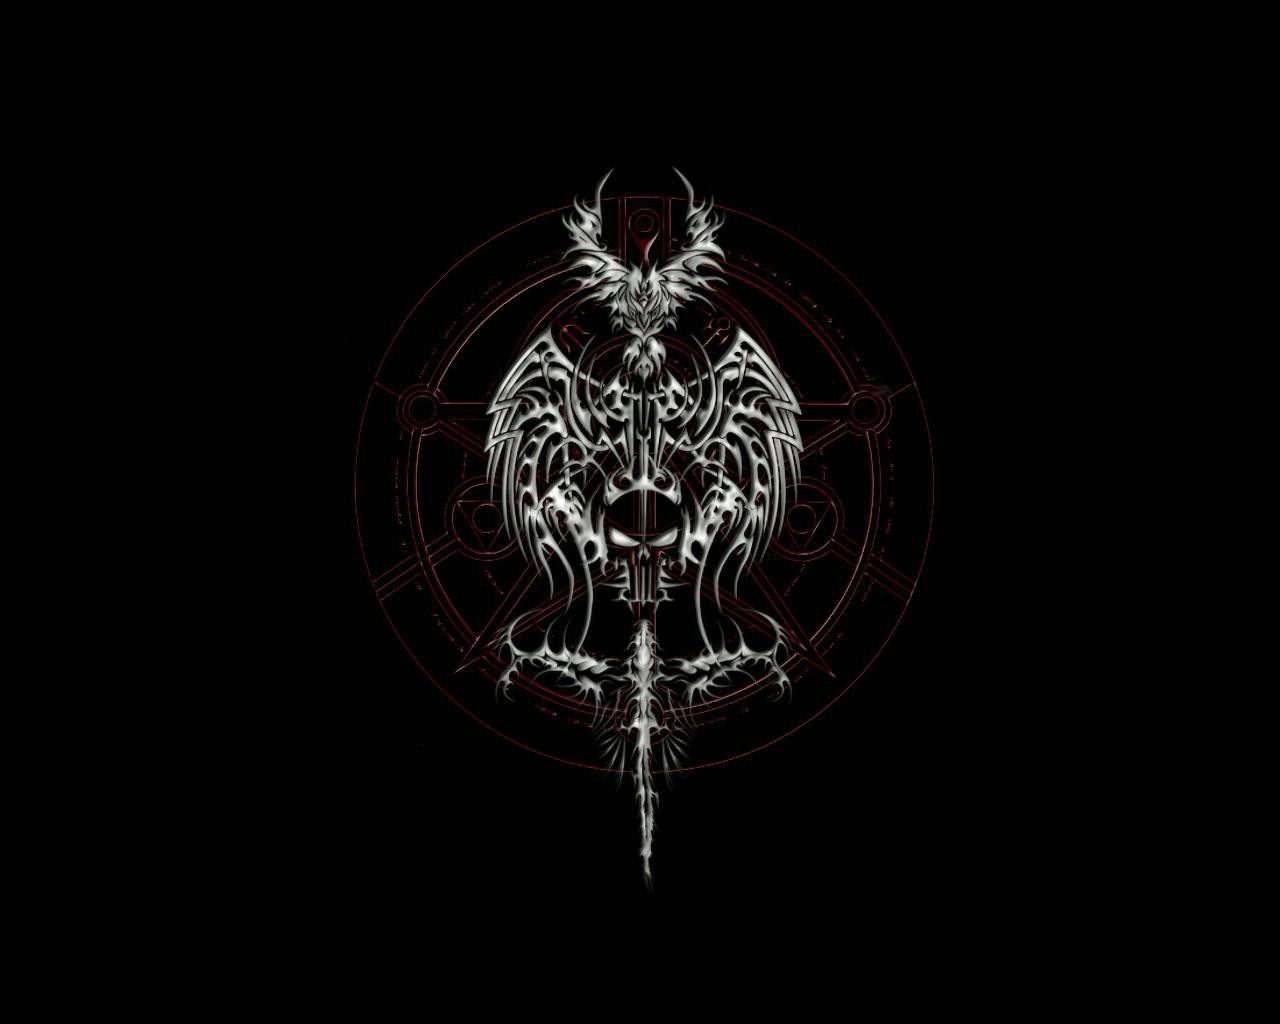 Symbol Of Death Dark Gothic Hd Wallpaper Cool Hd Wallpapers